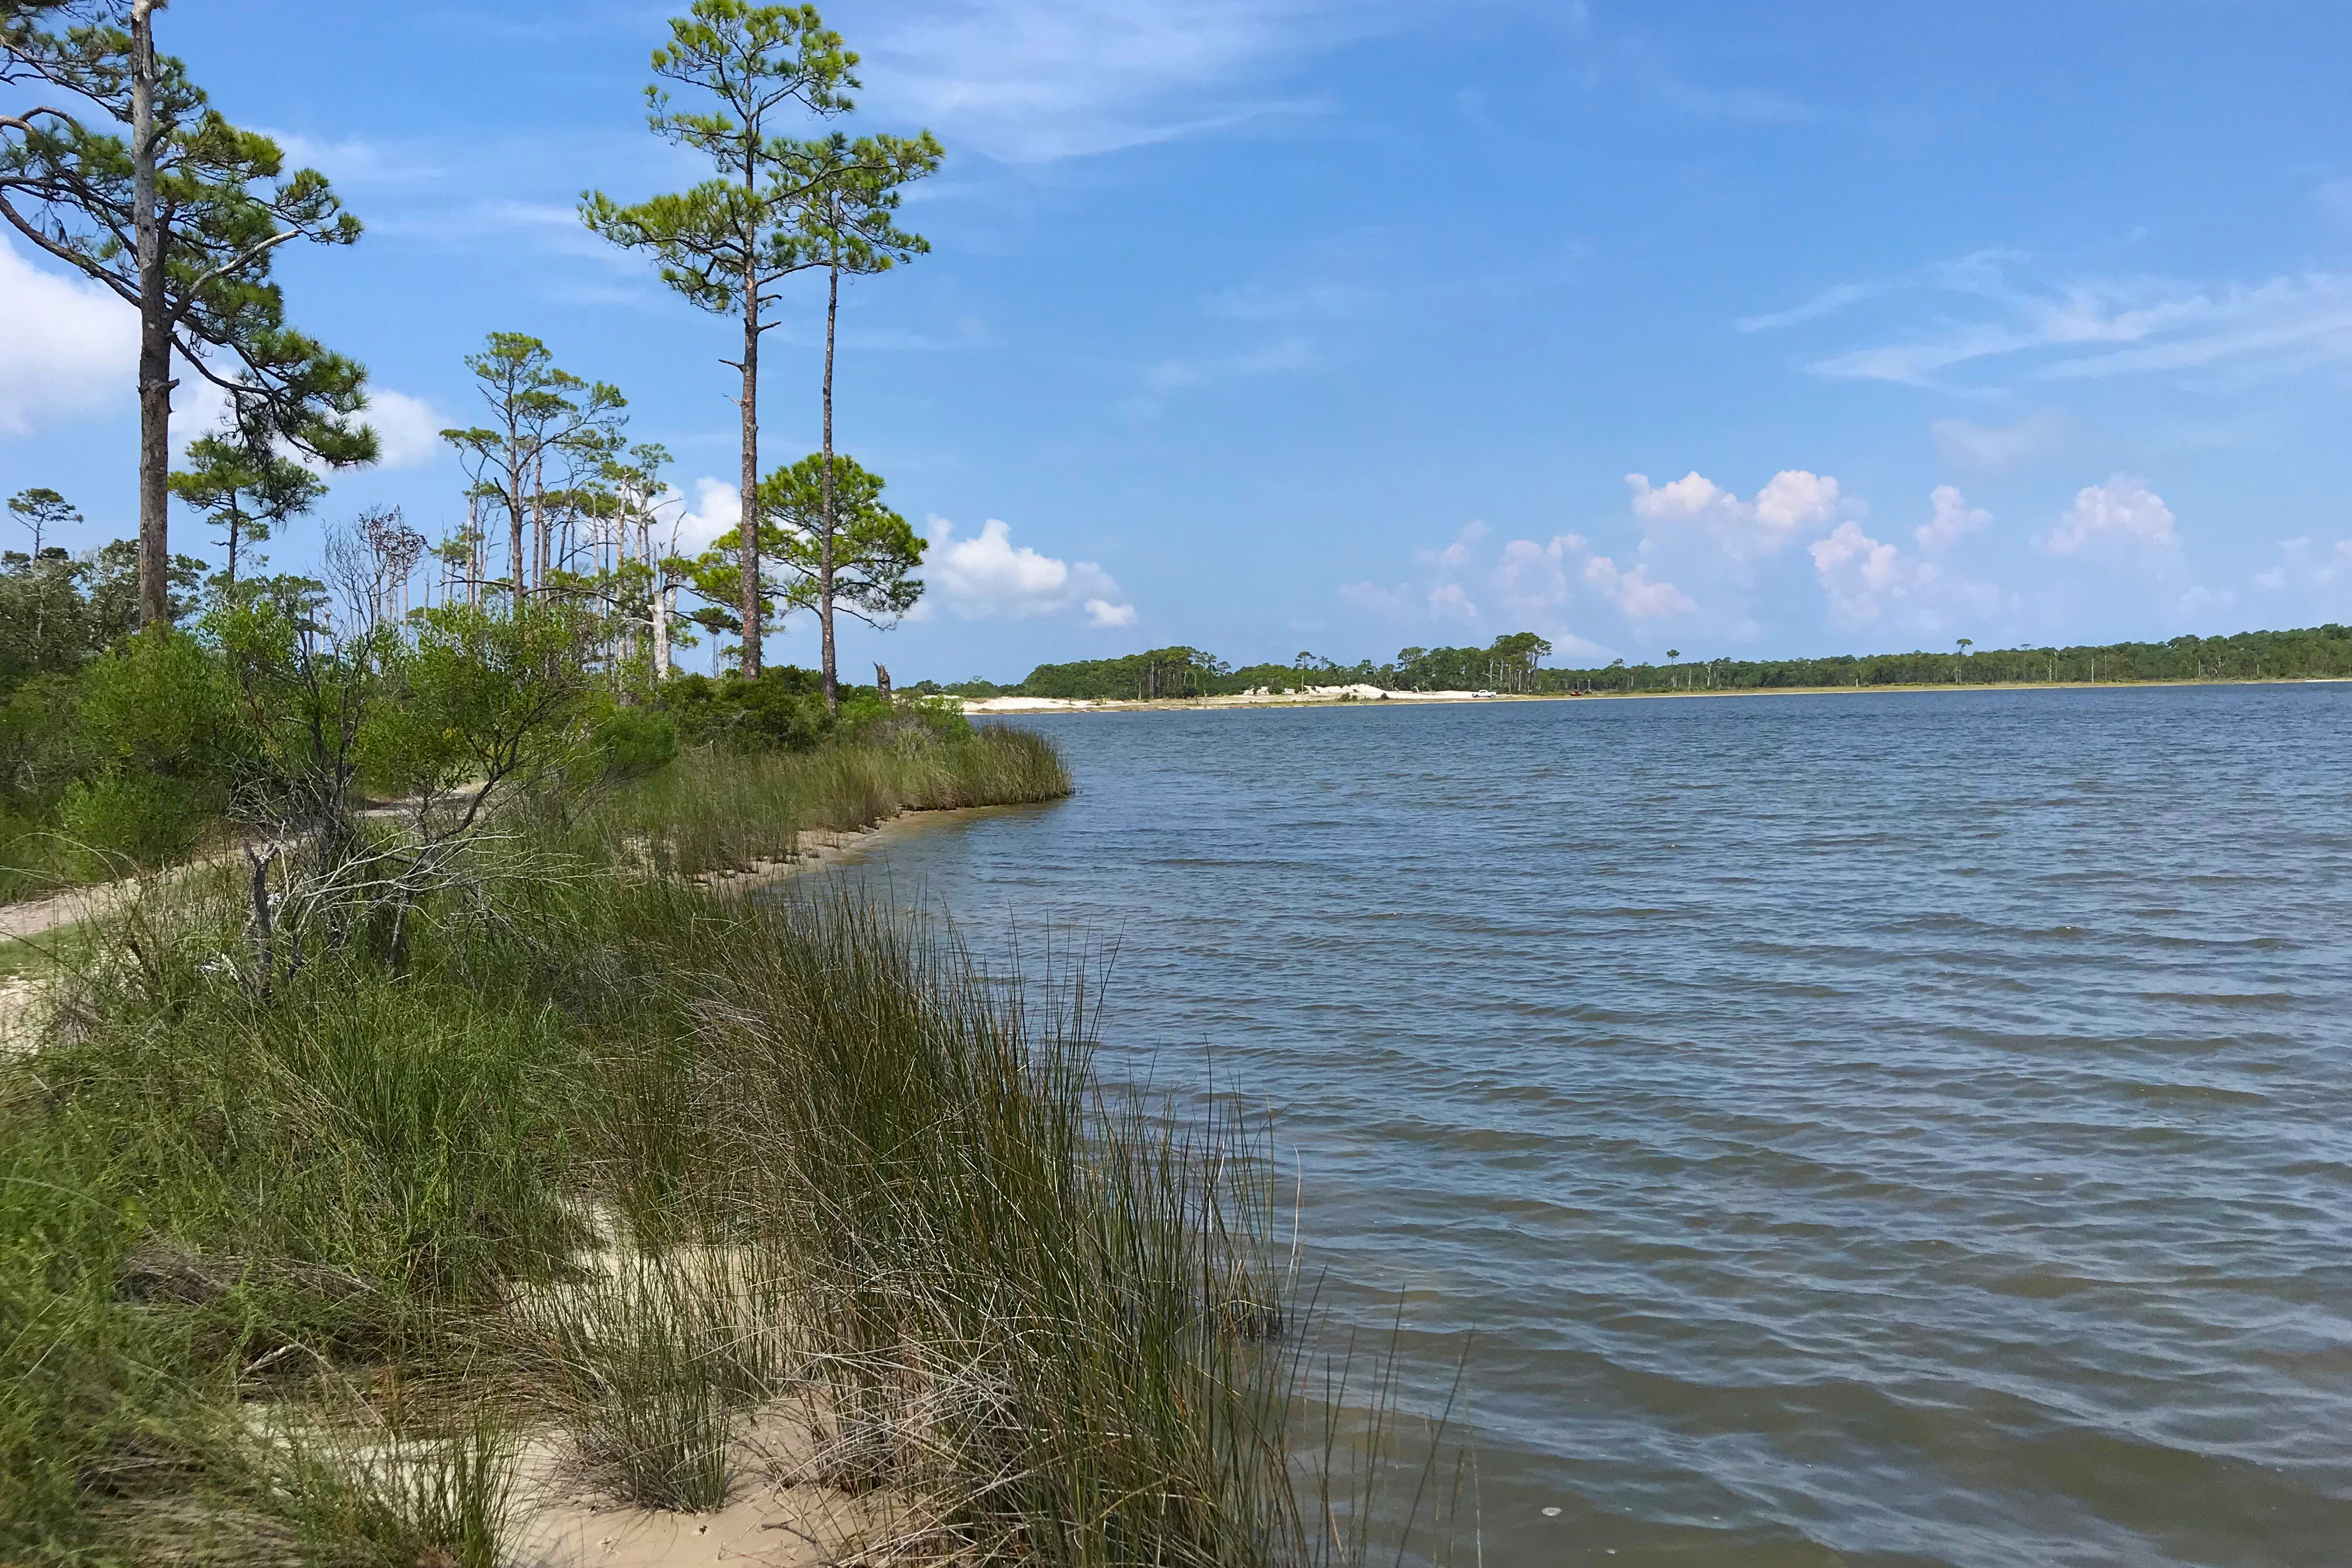 A lagoon shoreline has new plants, and other vegetation along the water's edge.